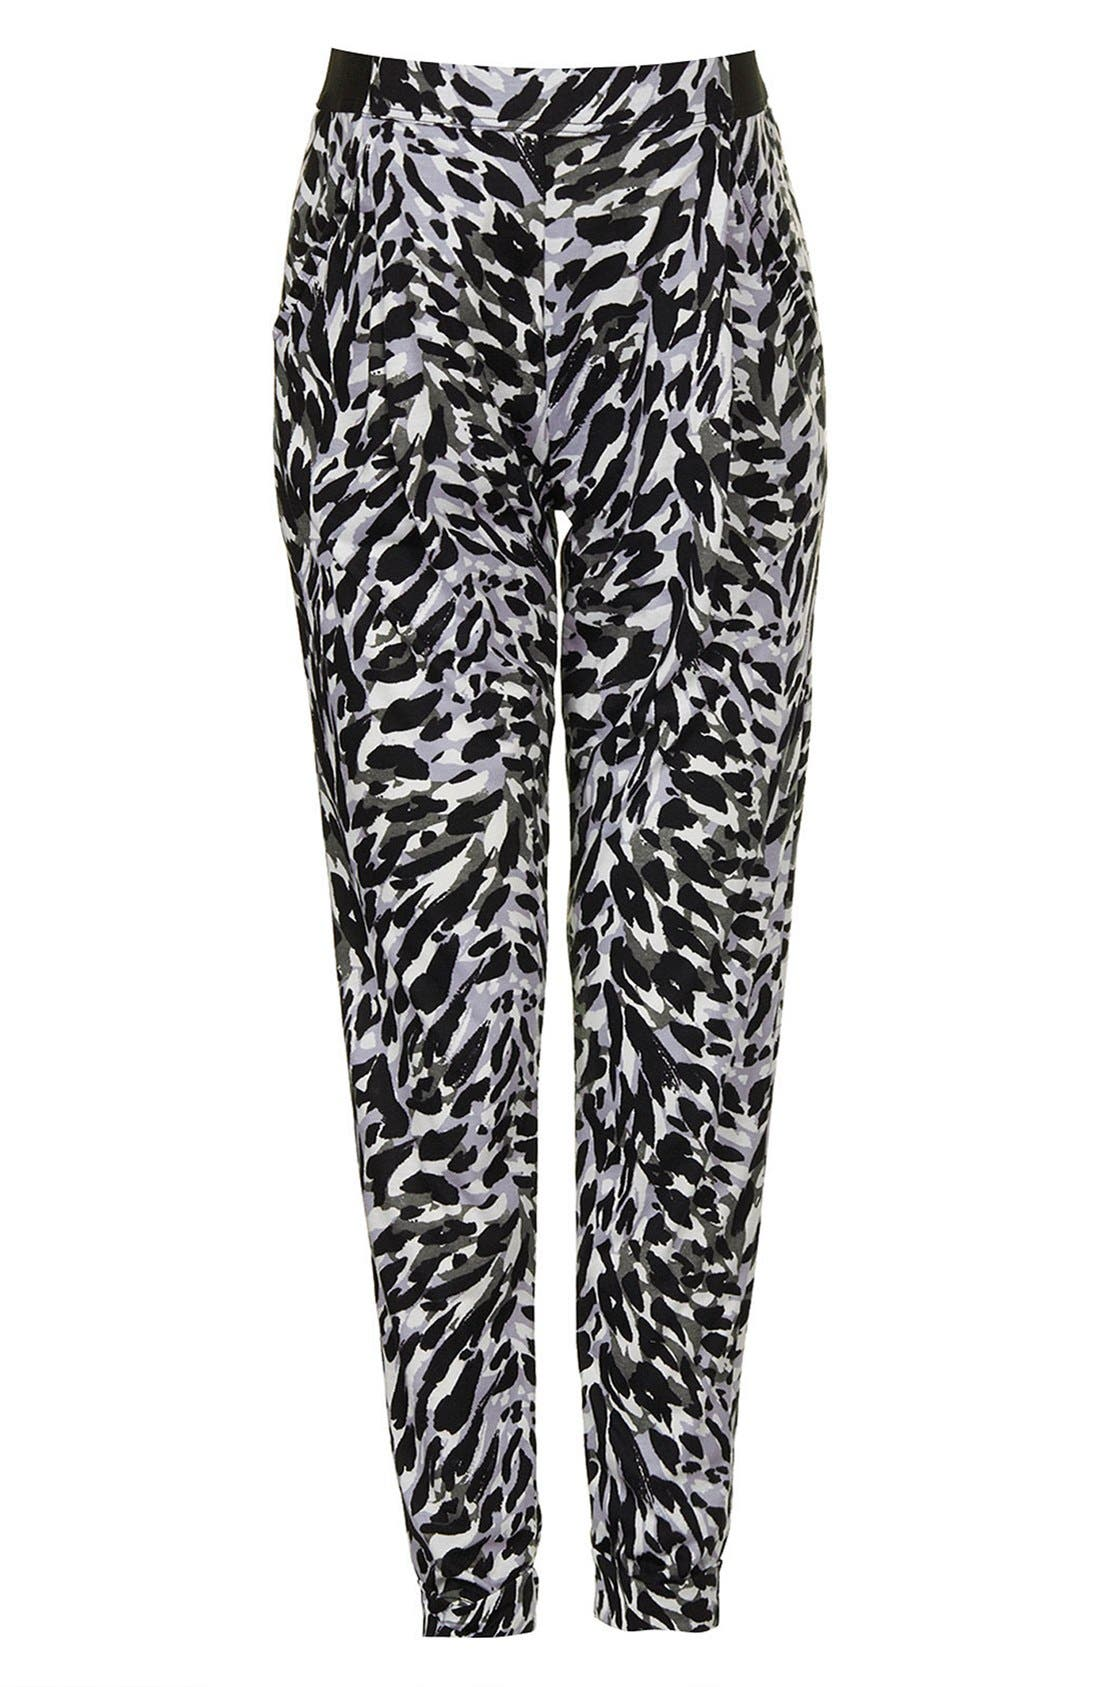 Main Image - Topshop 'Contrast Cat' Tapered Maternity Trousers